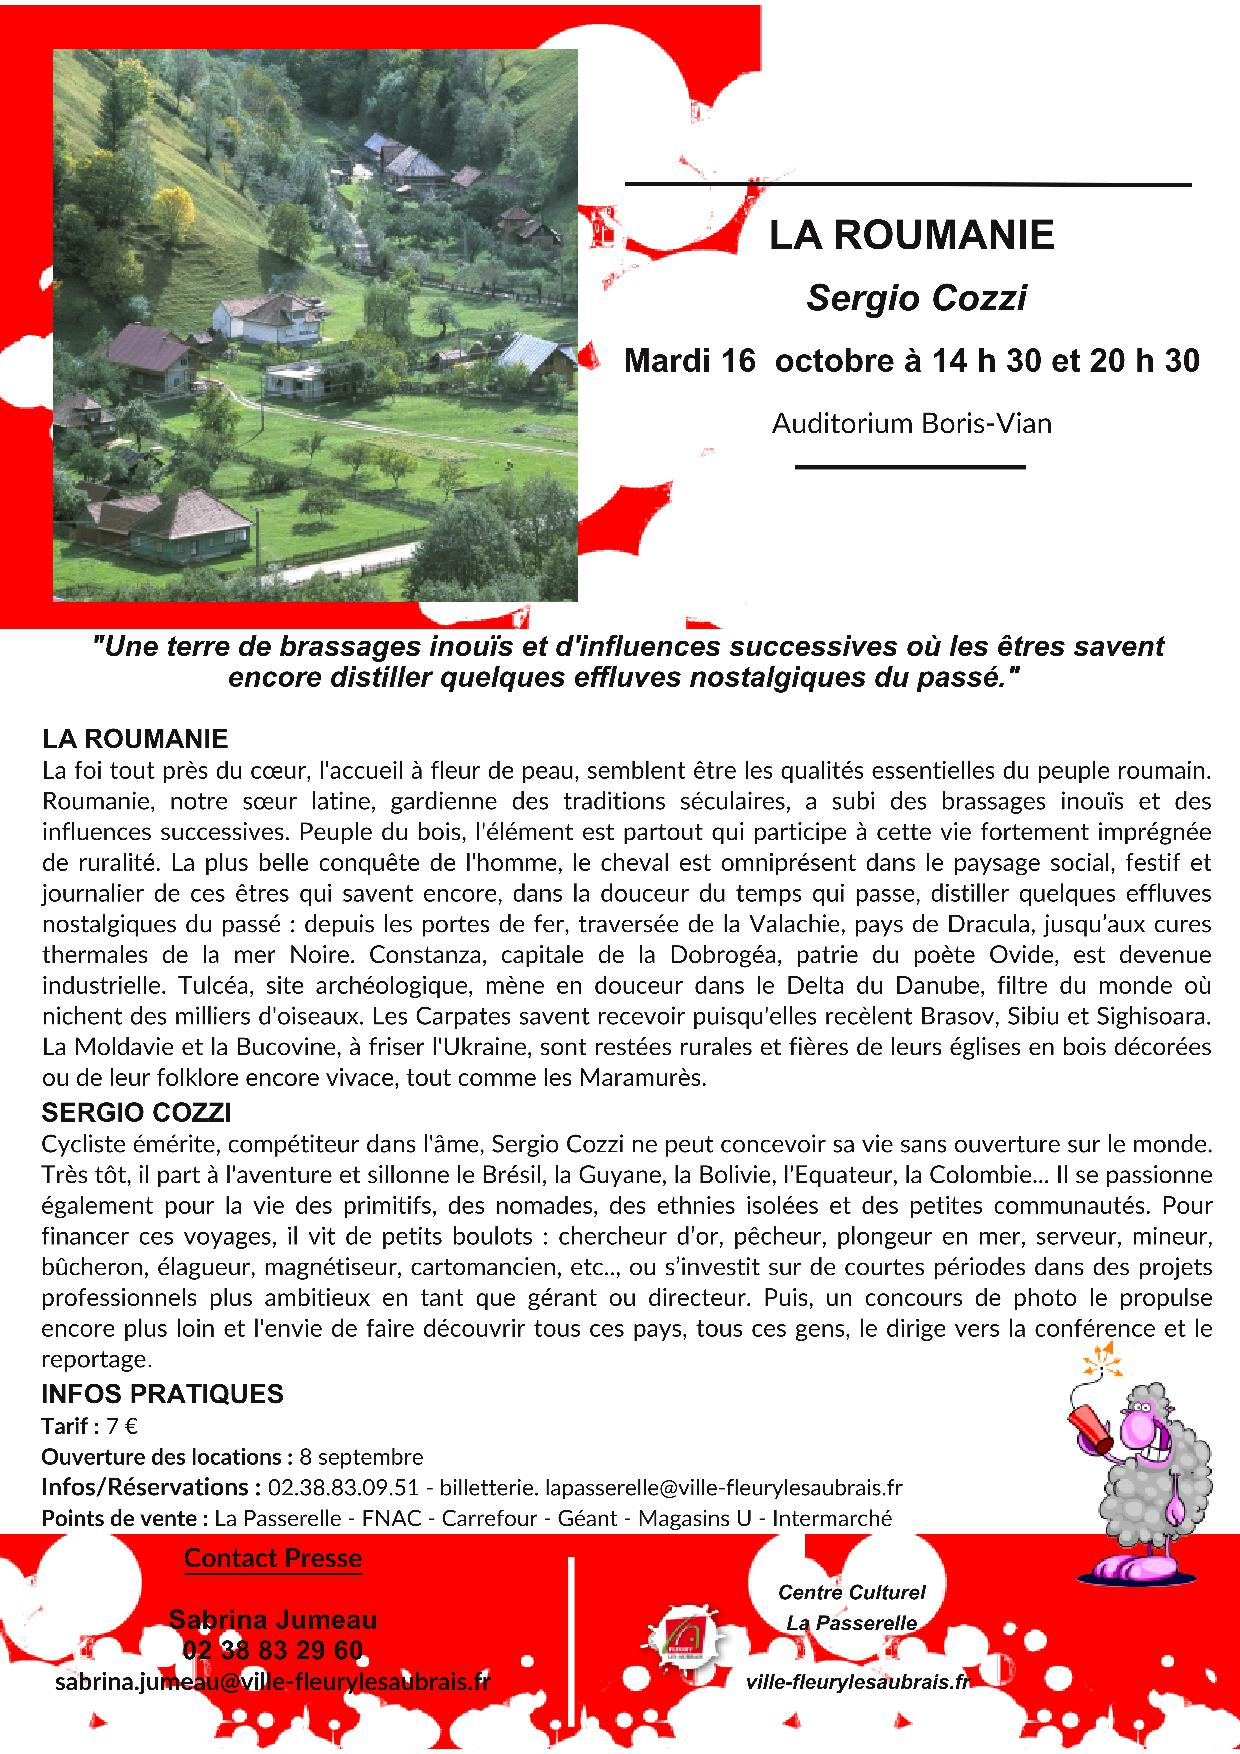 C_Users_Jose_AppData_Local_Temp_La Roumanie - 16 octobre.jpg